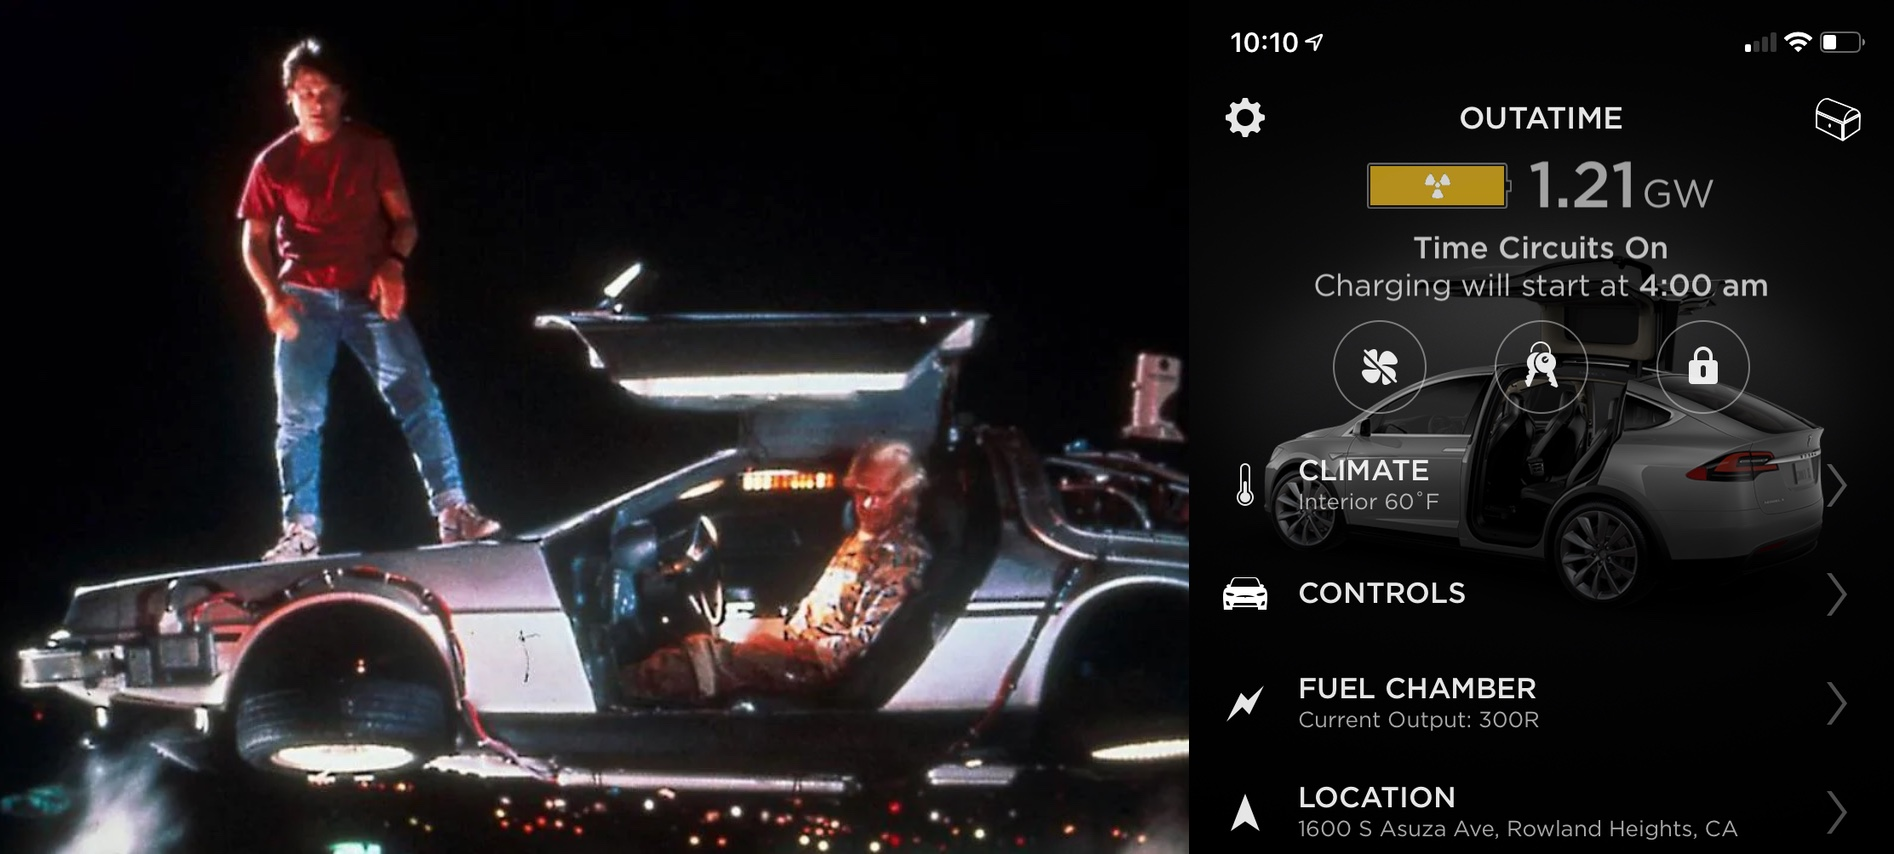 Tesla hides extensive 'Back to the Future' Easter egg in latest software